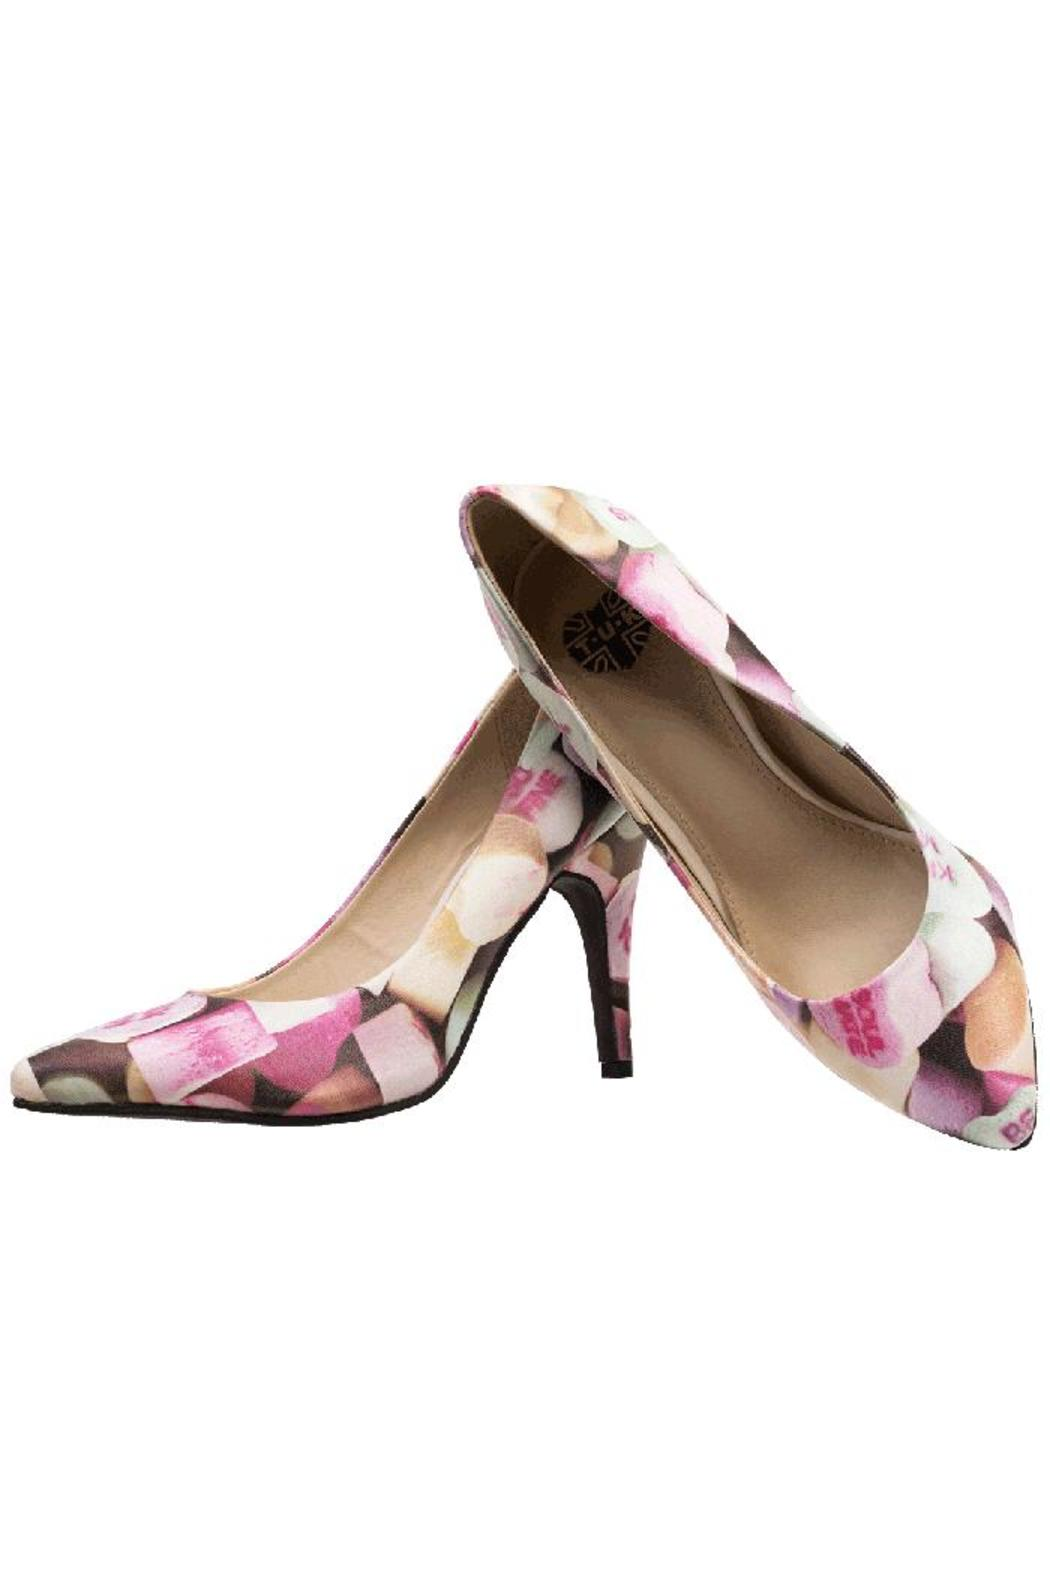 T.U.K. Shoes Candy Hearts Heels - Front Full Image